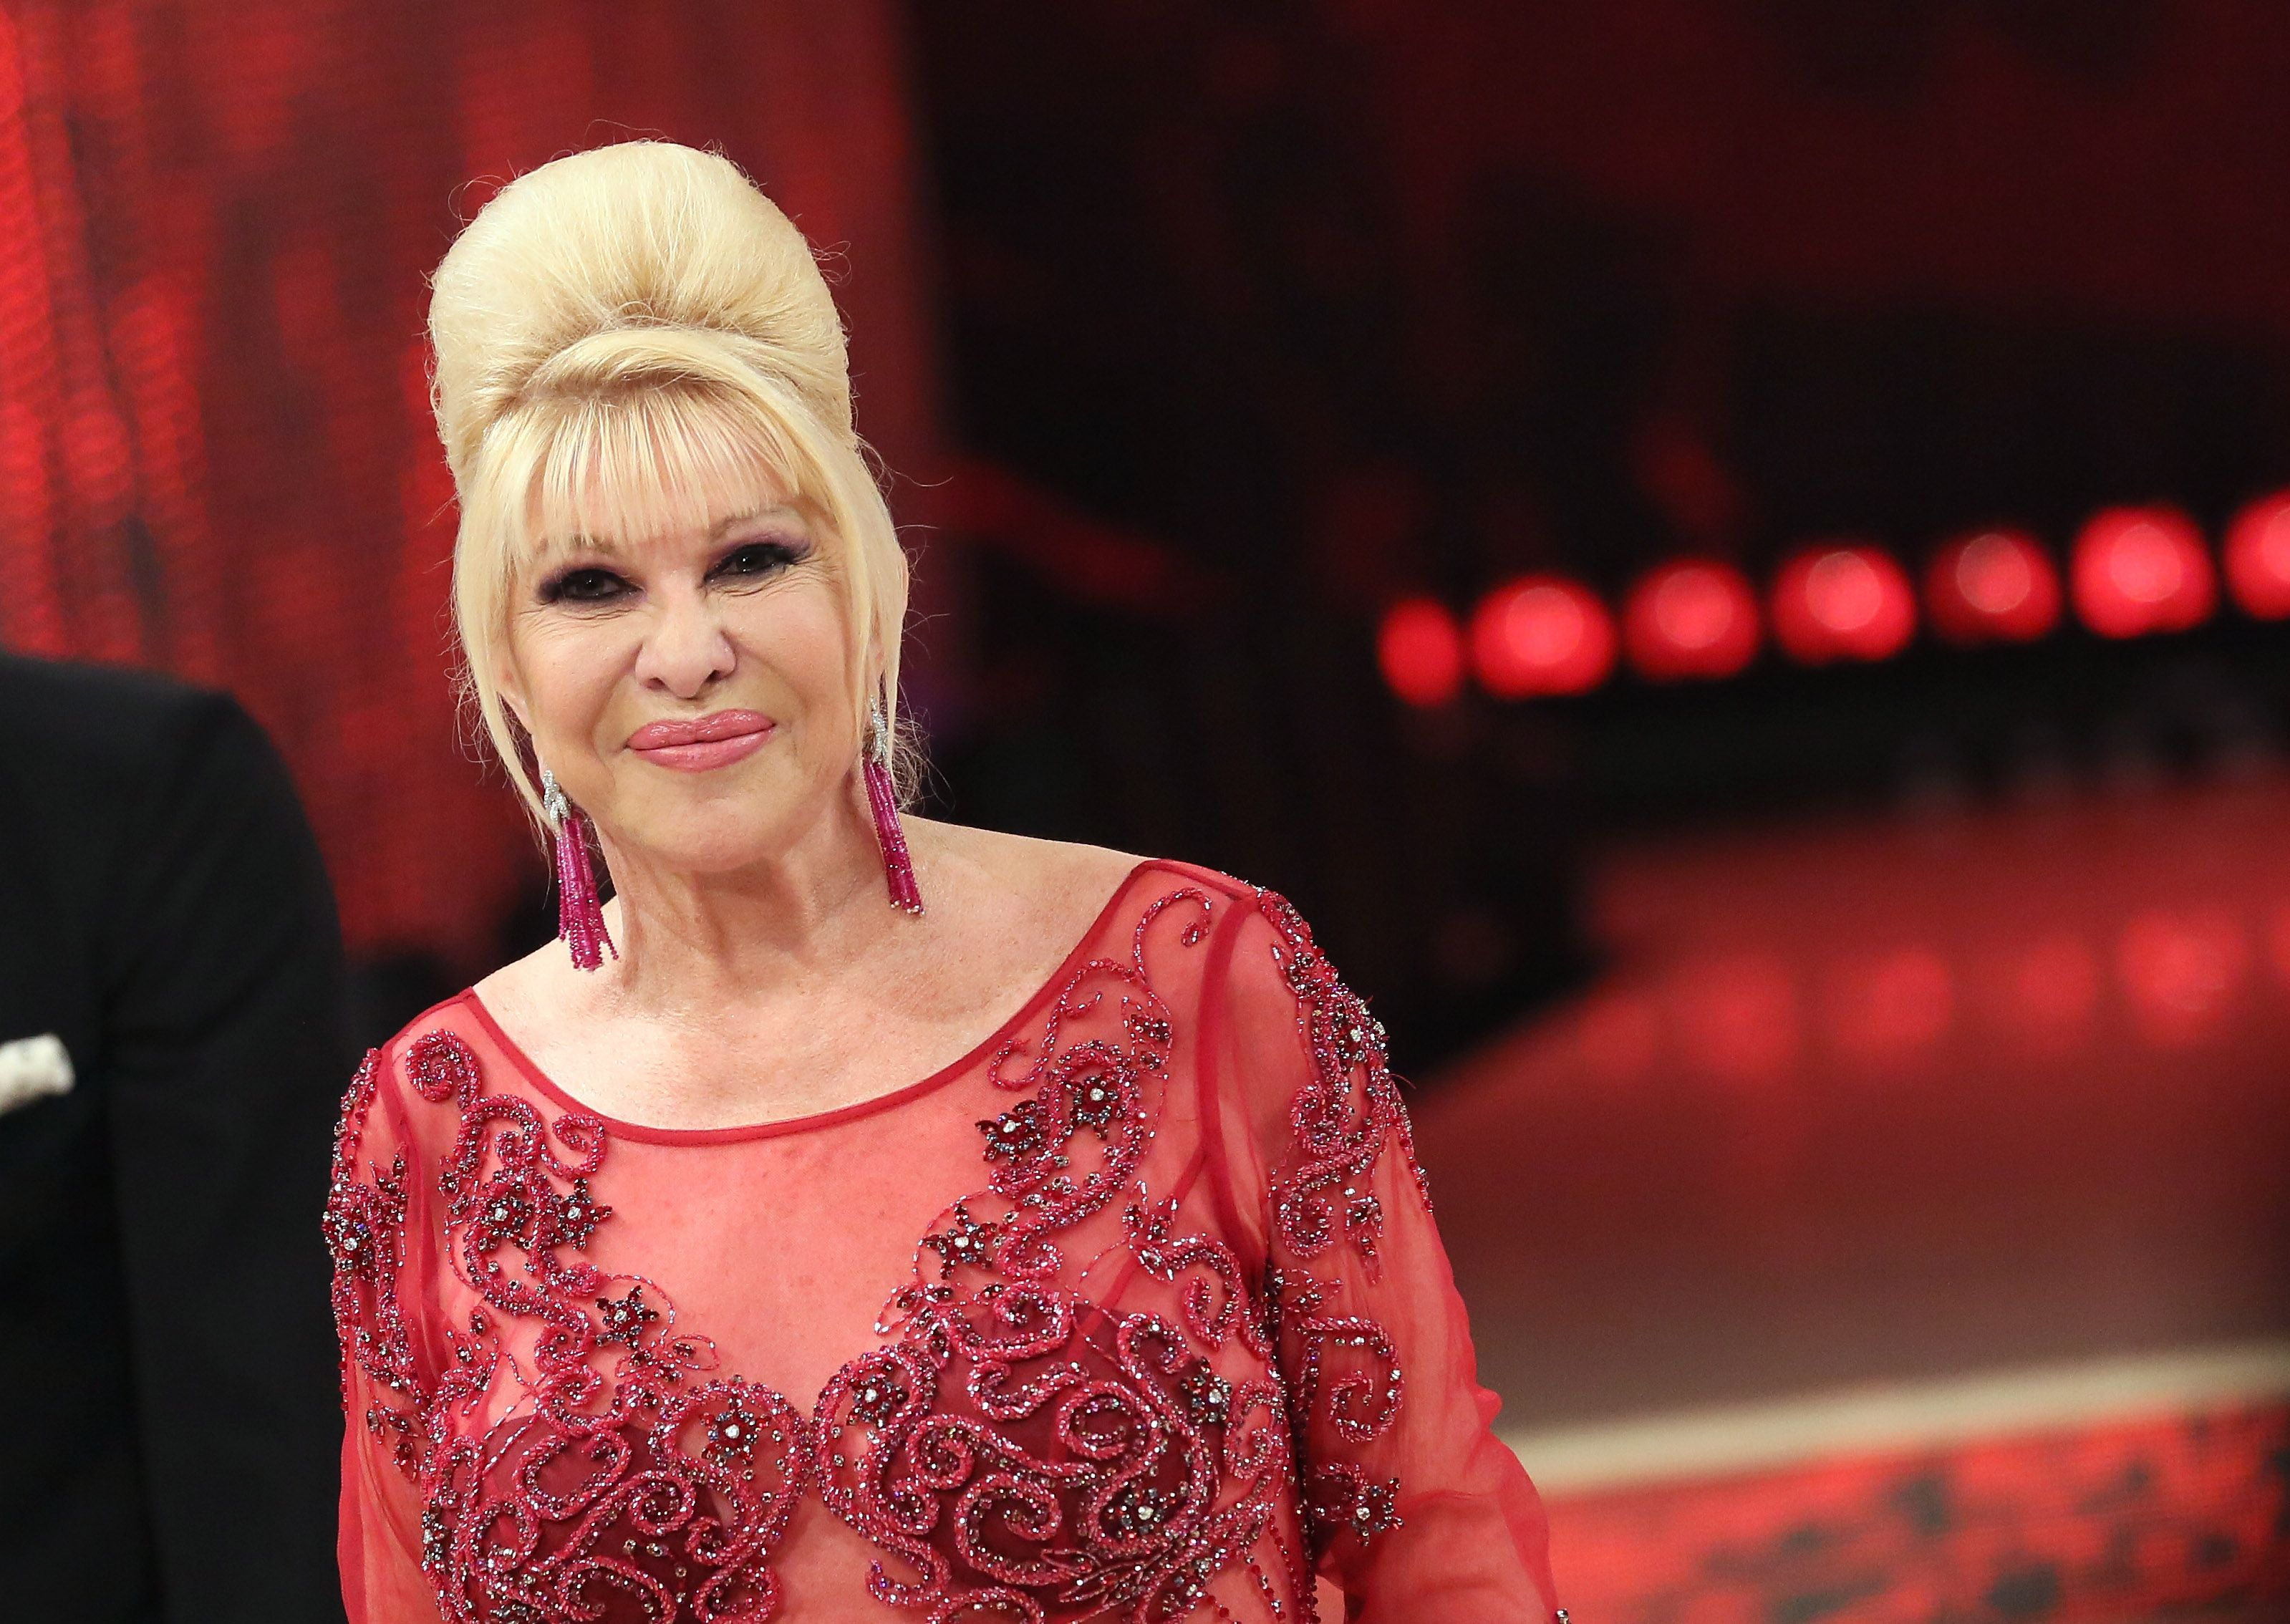 Ivana Trump attends the Italian TV show 'Ballando Con Le Stelle' (Dancing with the Stars) at RAI Auditorium on May 5, 2018 in Rome, Italy. | Source: Getty Images